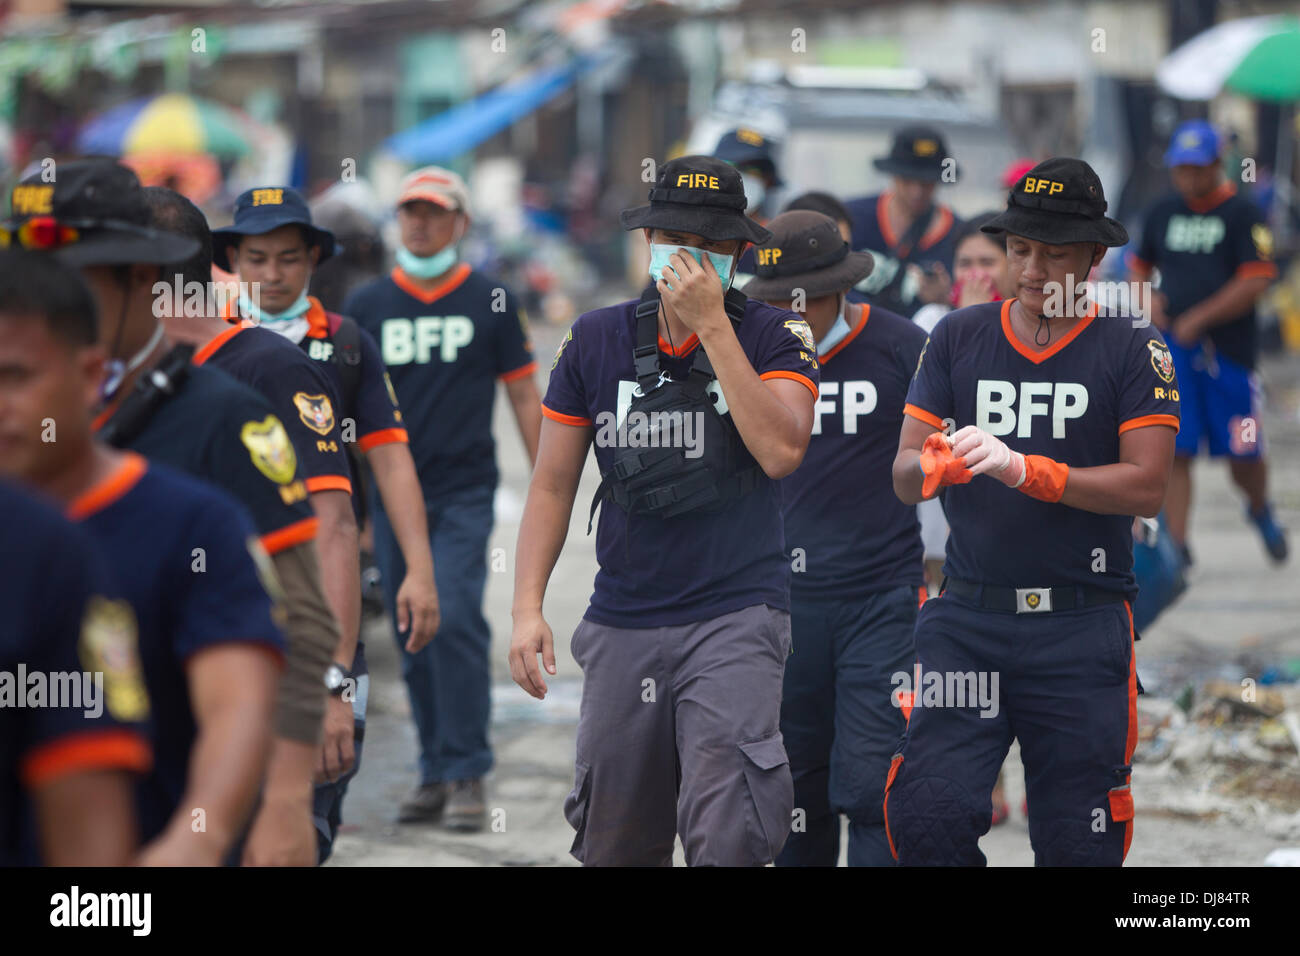 Tacloban City, Phillipines. 21st Nov, 2013. Members of the BFP,(Bureau of Fire Protection) have the unenviable task of assisting in collecting the bodies of the dead.Units have been drafted in from different areas of the Philippines. Credit:  imagegallery2/Alamy Live News - Stock Image